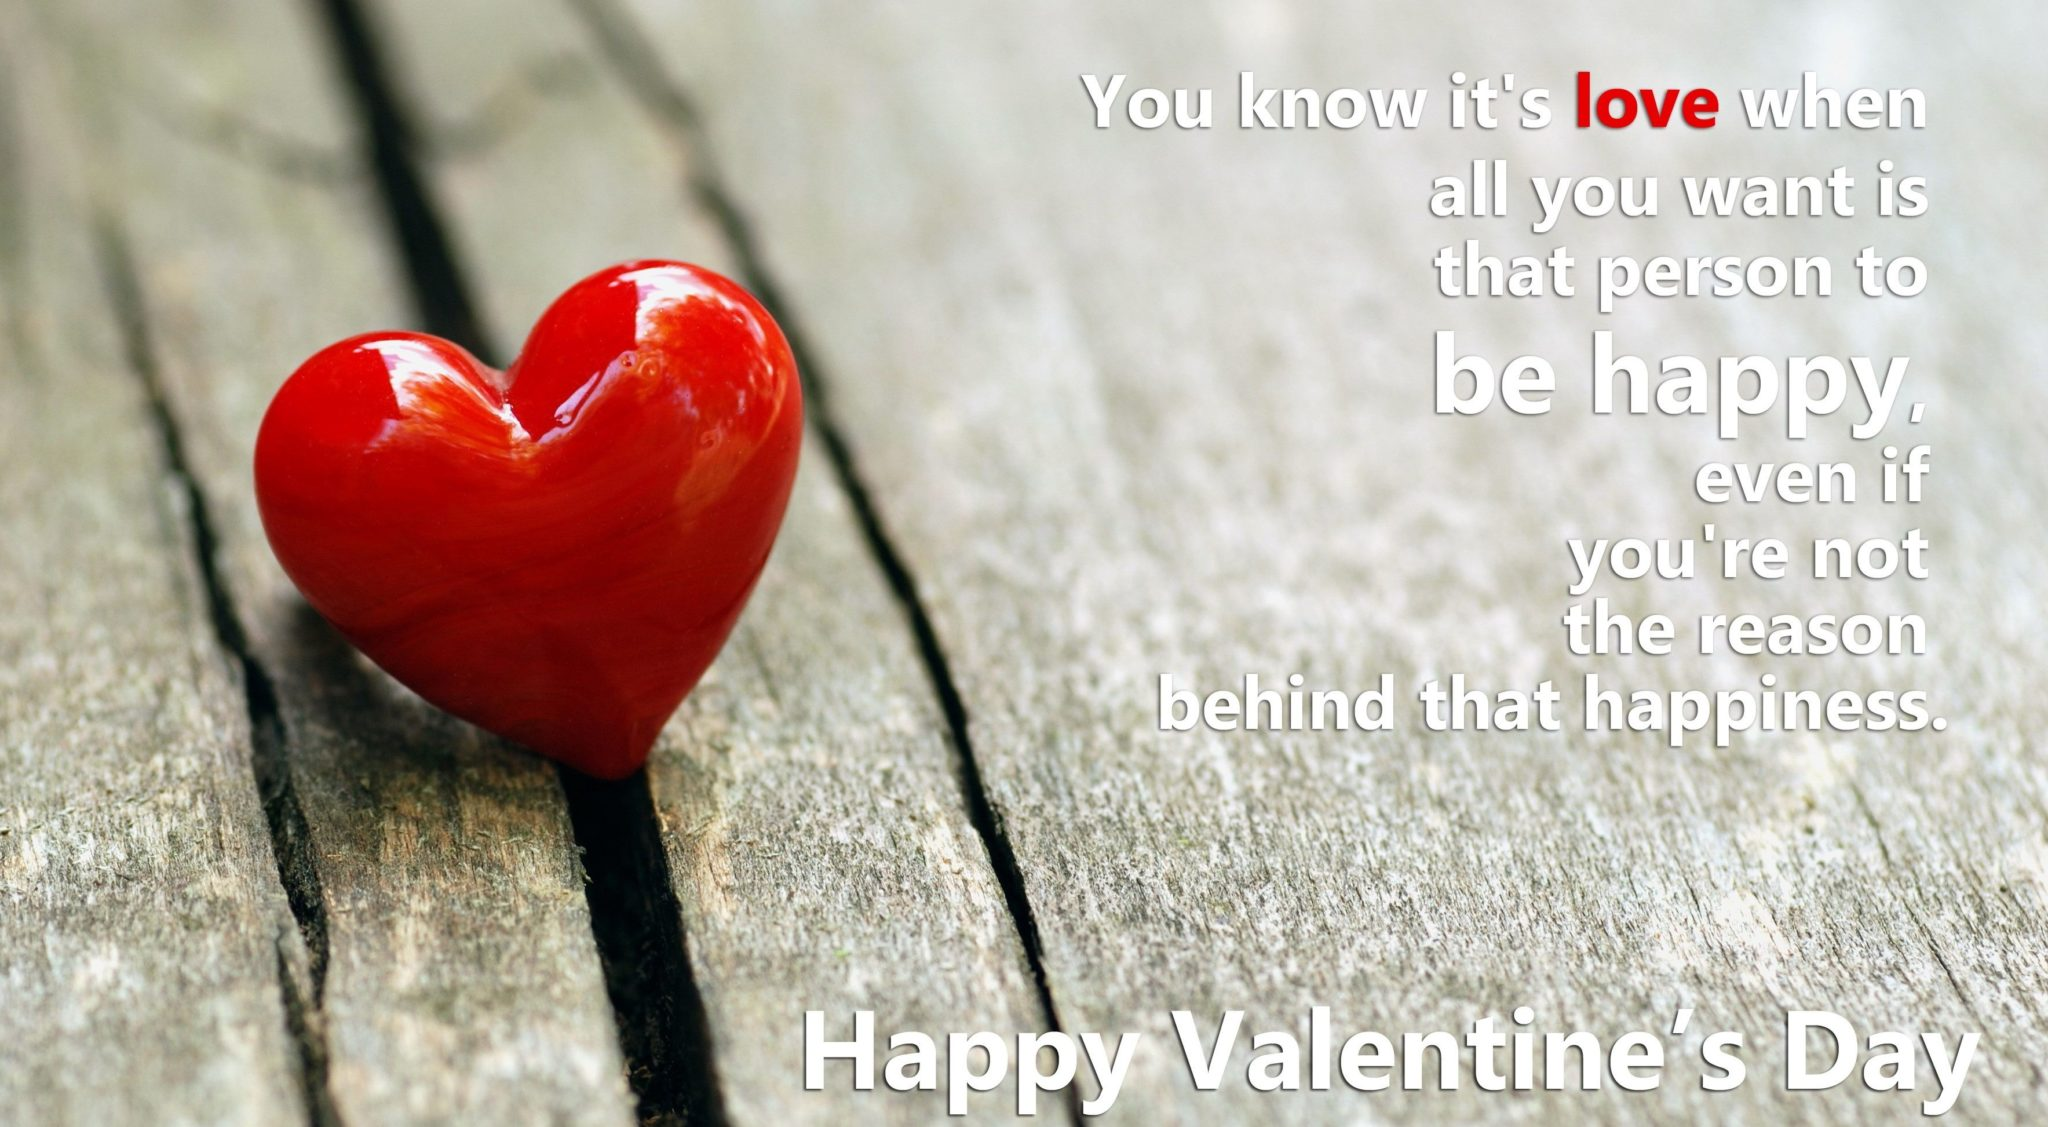 Top 20 Valentine's Day Wishes and Images